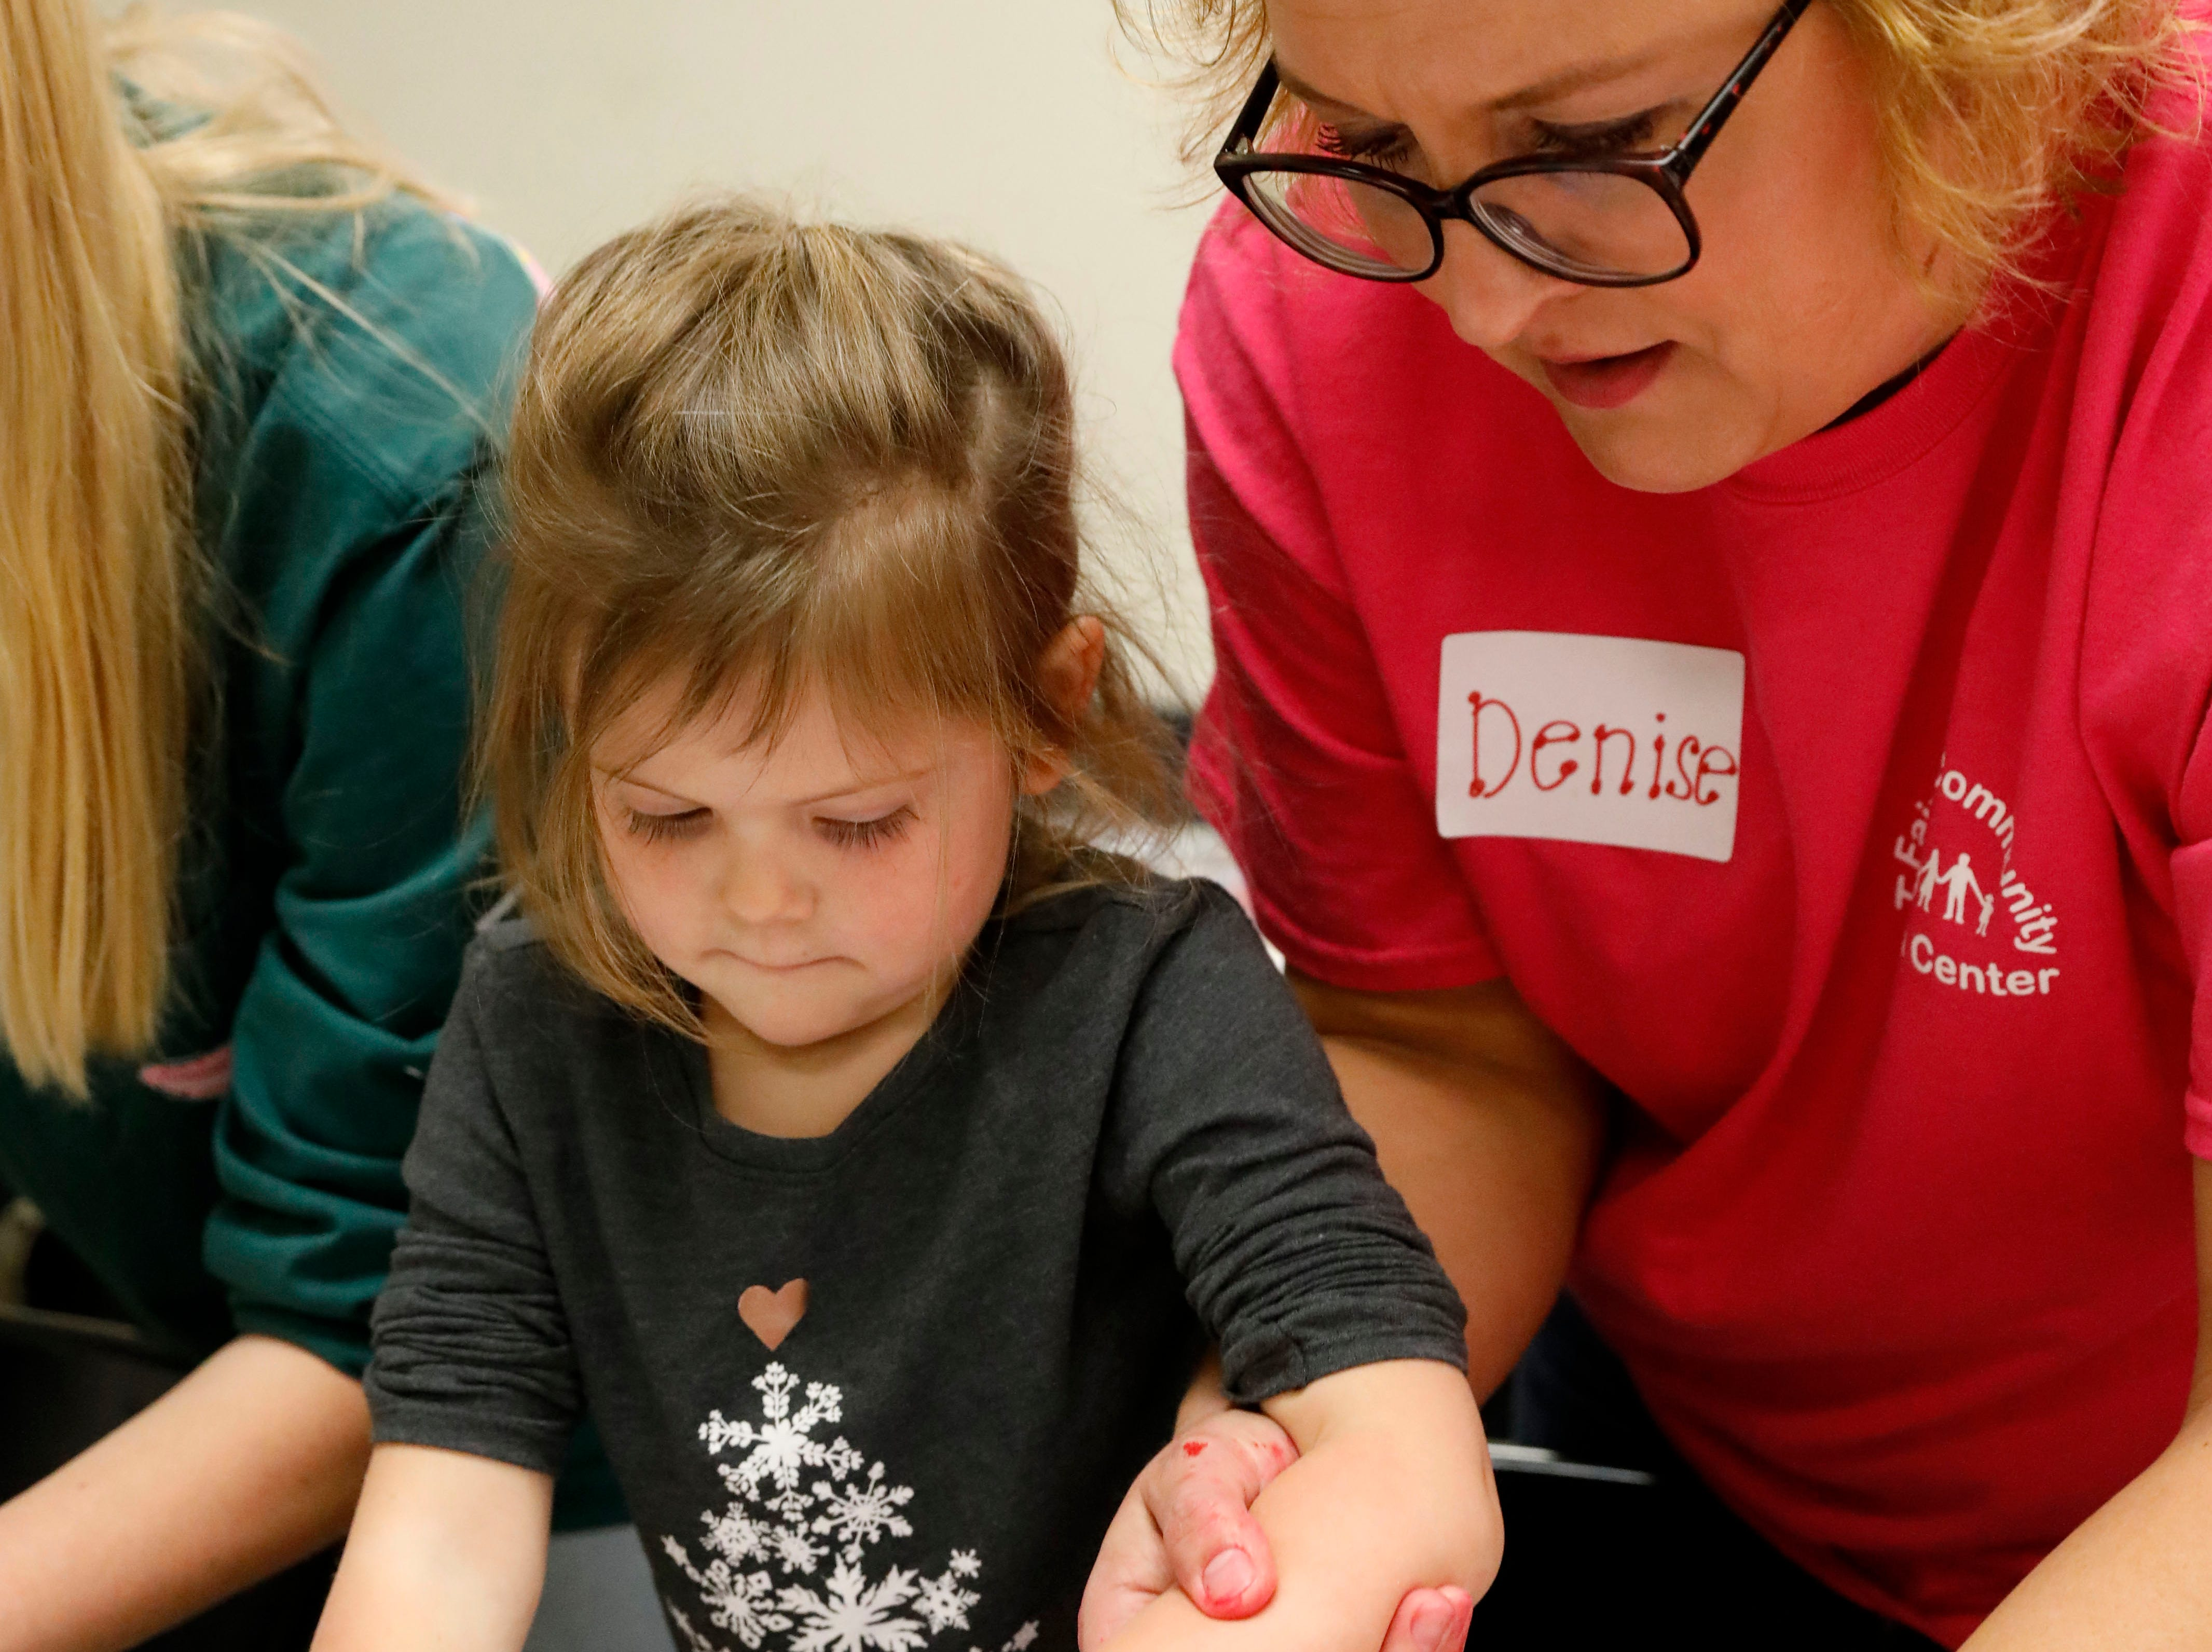 Denise Ream, right, helps Kinsley Taylor, 3, make a hand print on a piece of paper Saturday, Dec. 1, 2018, at the Gift of Time event at Lancaster High School in Lancaster. Volunteers turned the red hand print into a cardinal as children visited other stations at the annual free community event.